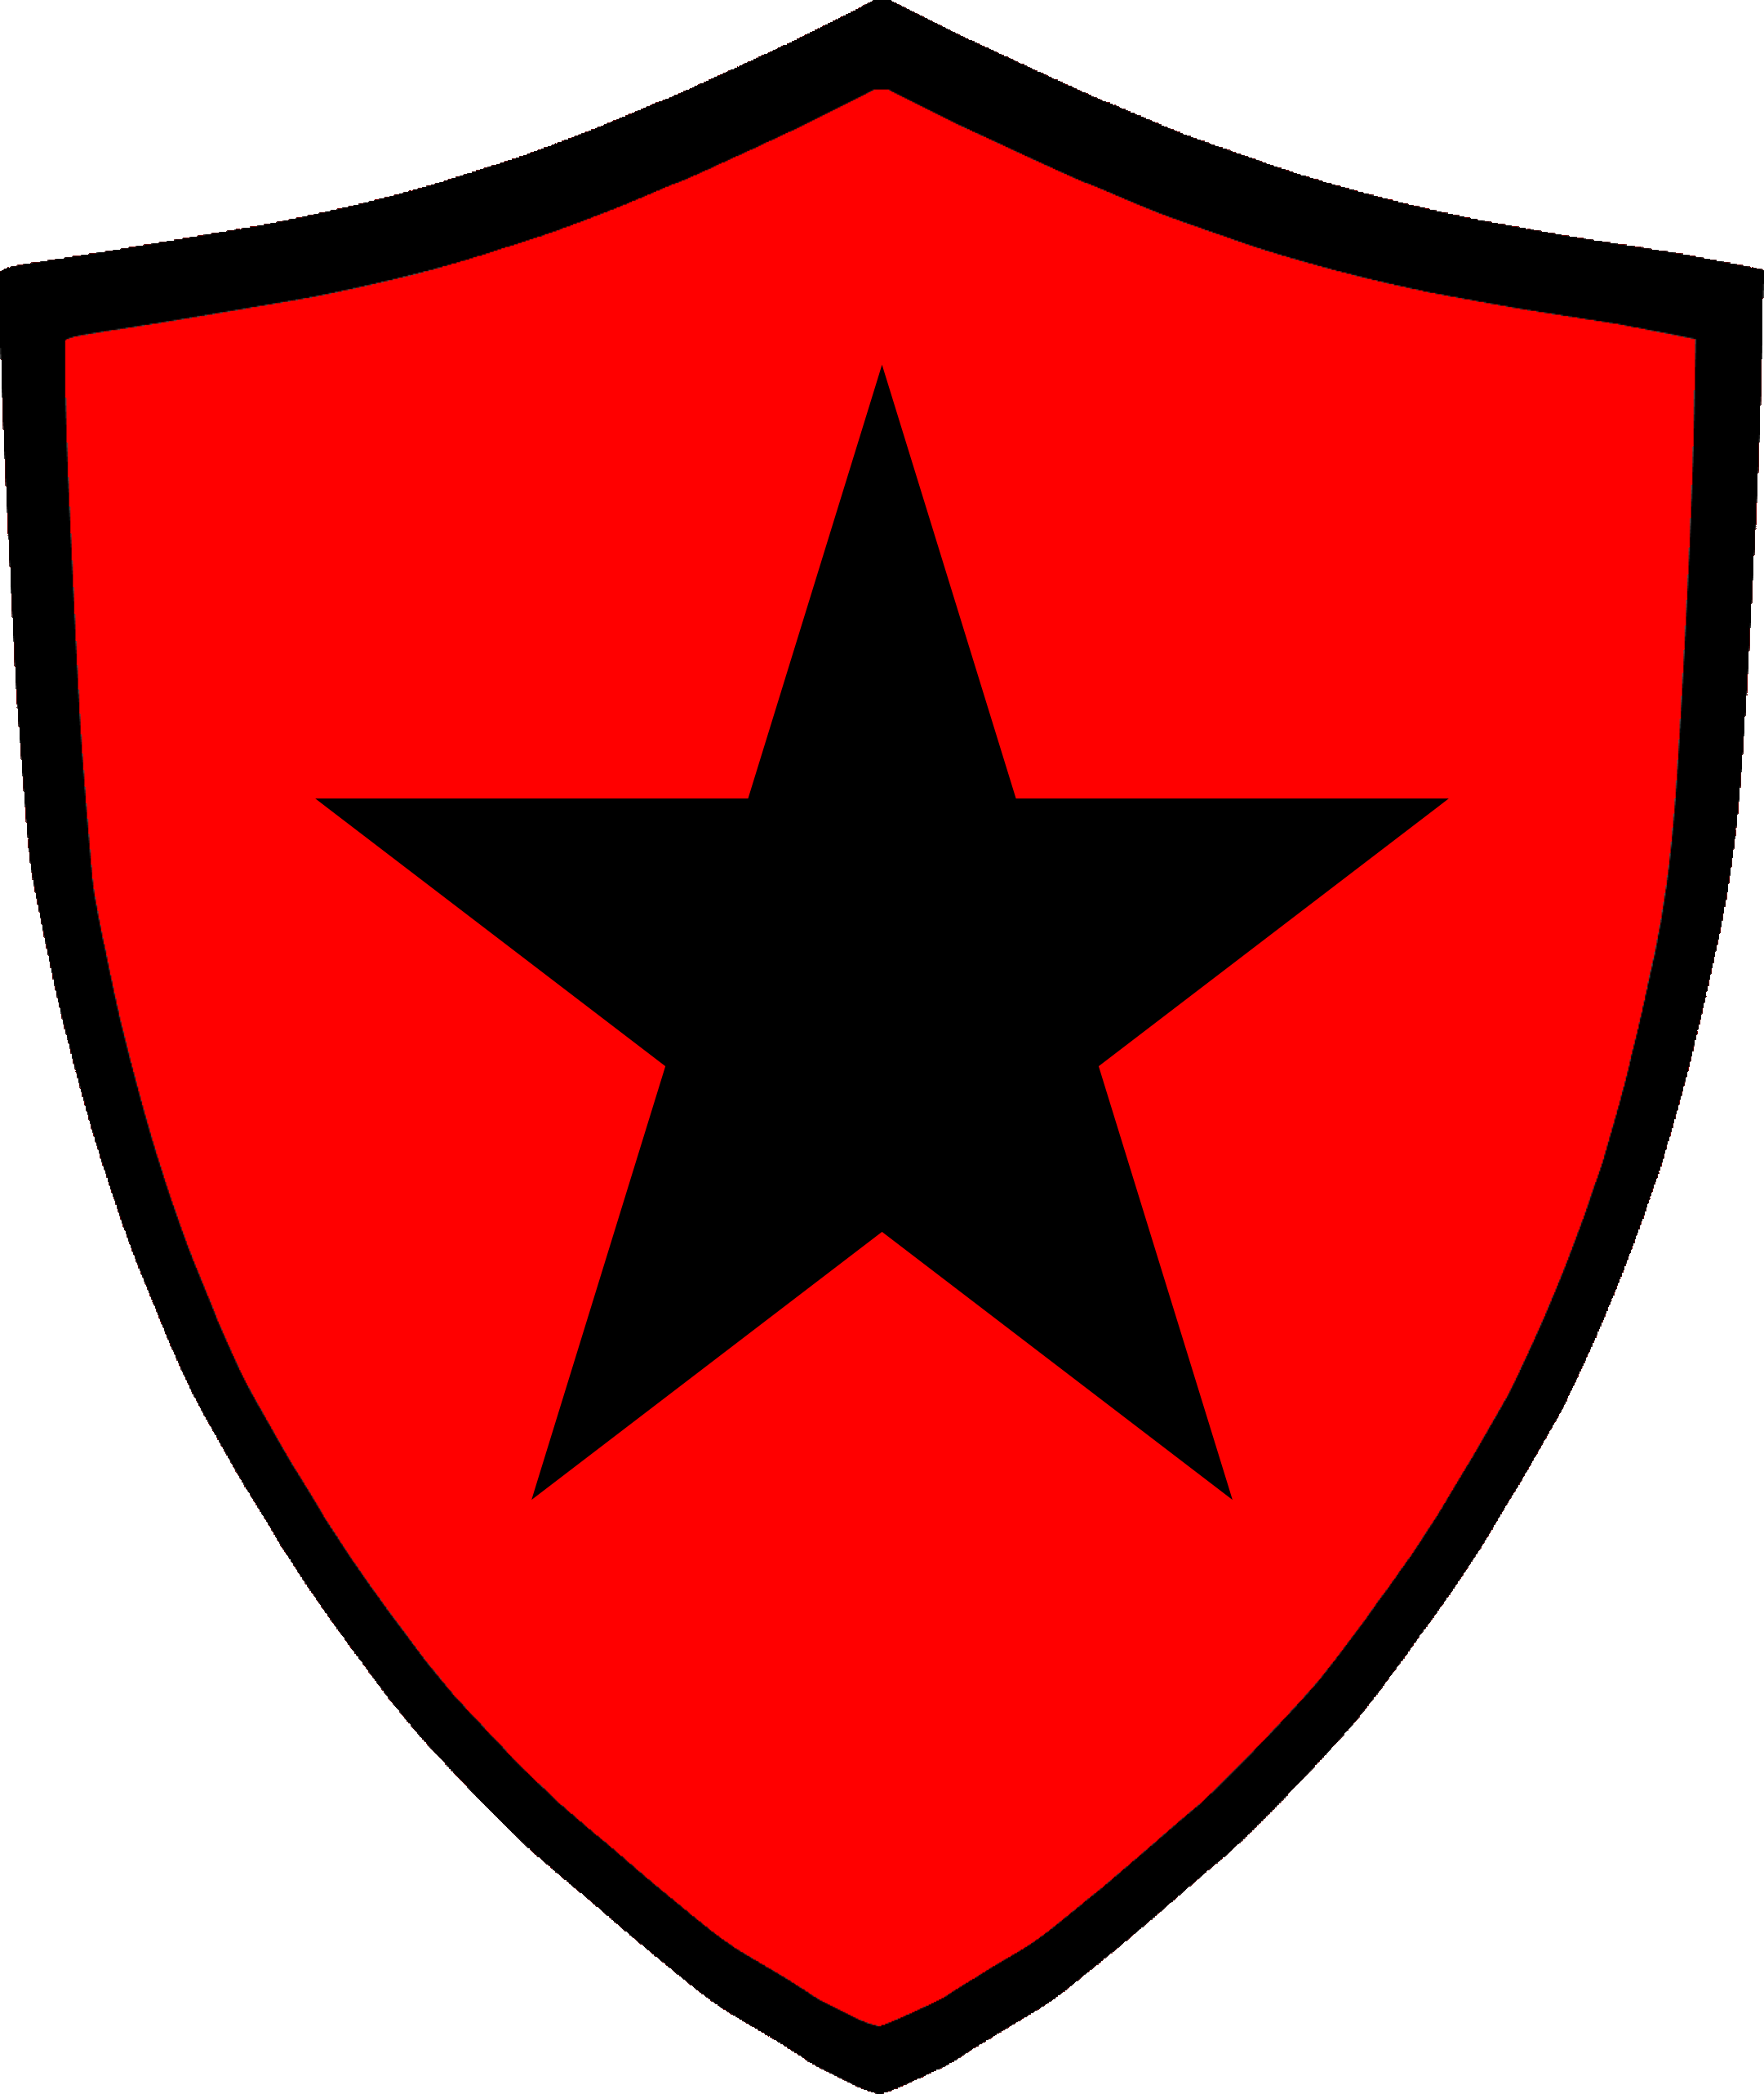 Clipart shield red black. File emblem icon png